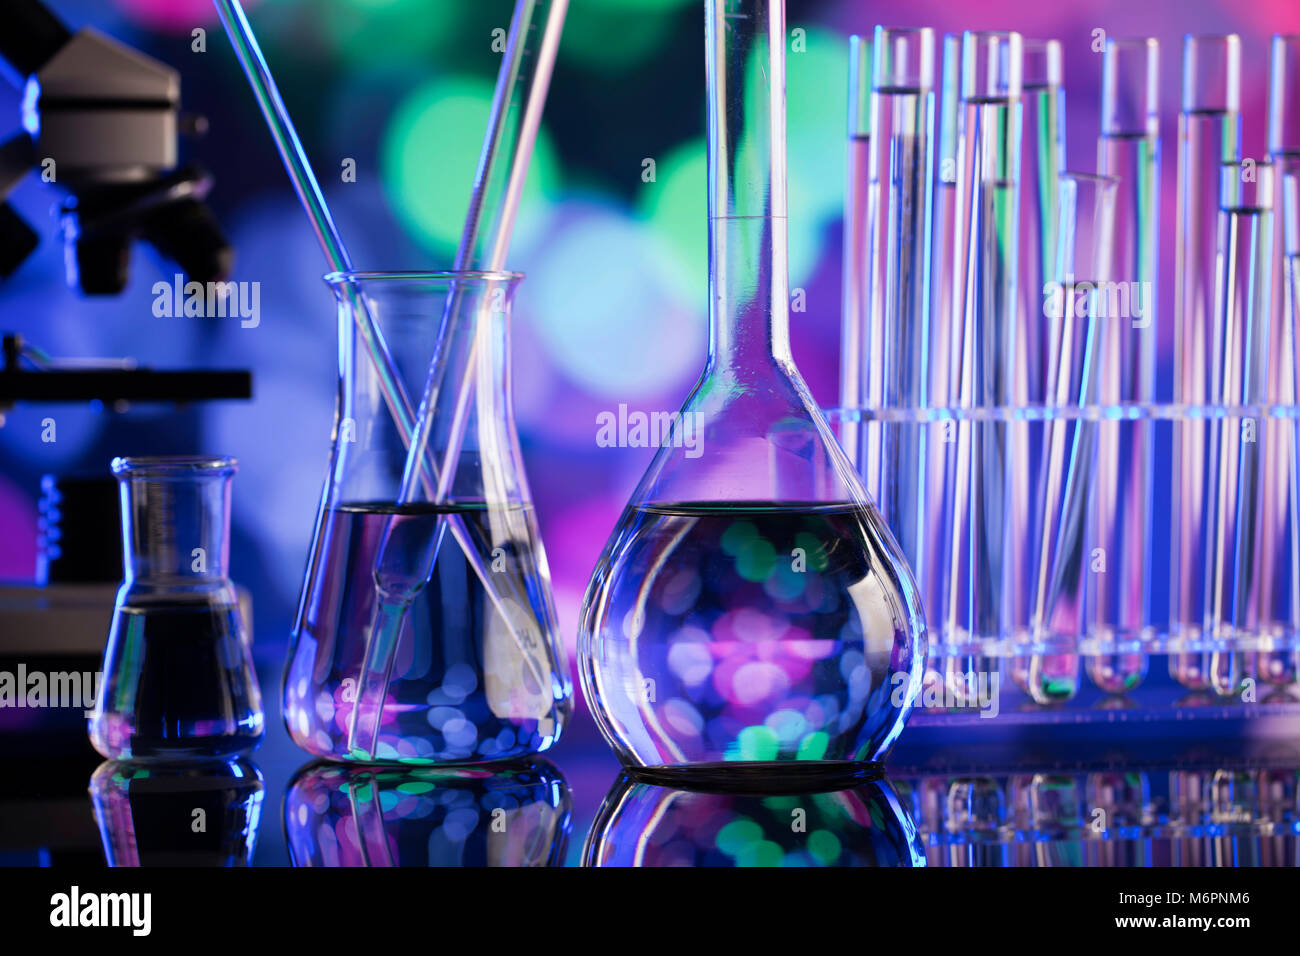 Science concept background. Microscope and laboratory glassware composition. Stock Photo